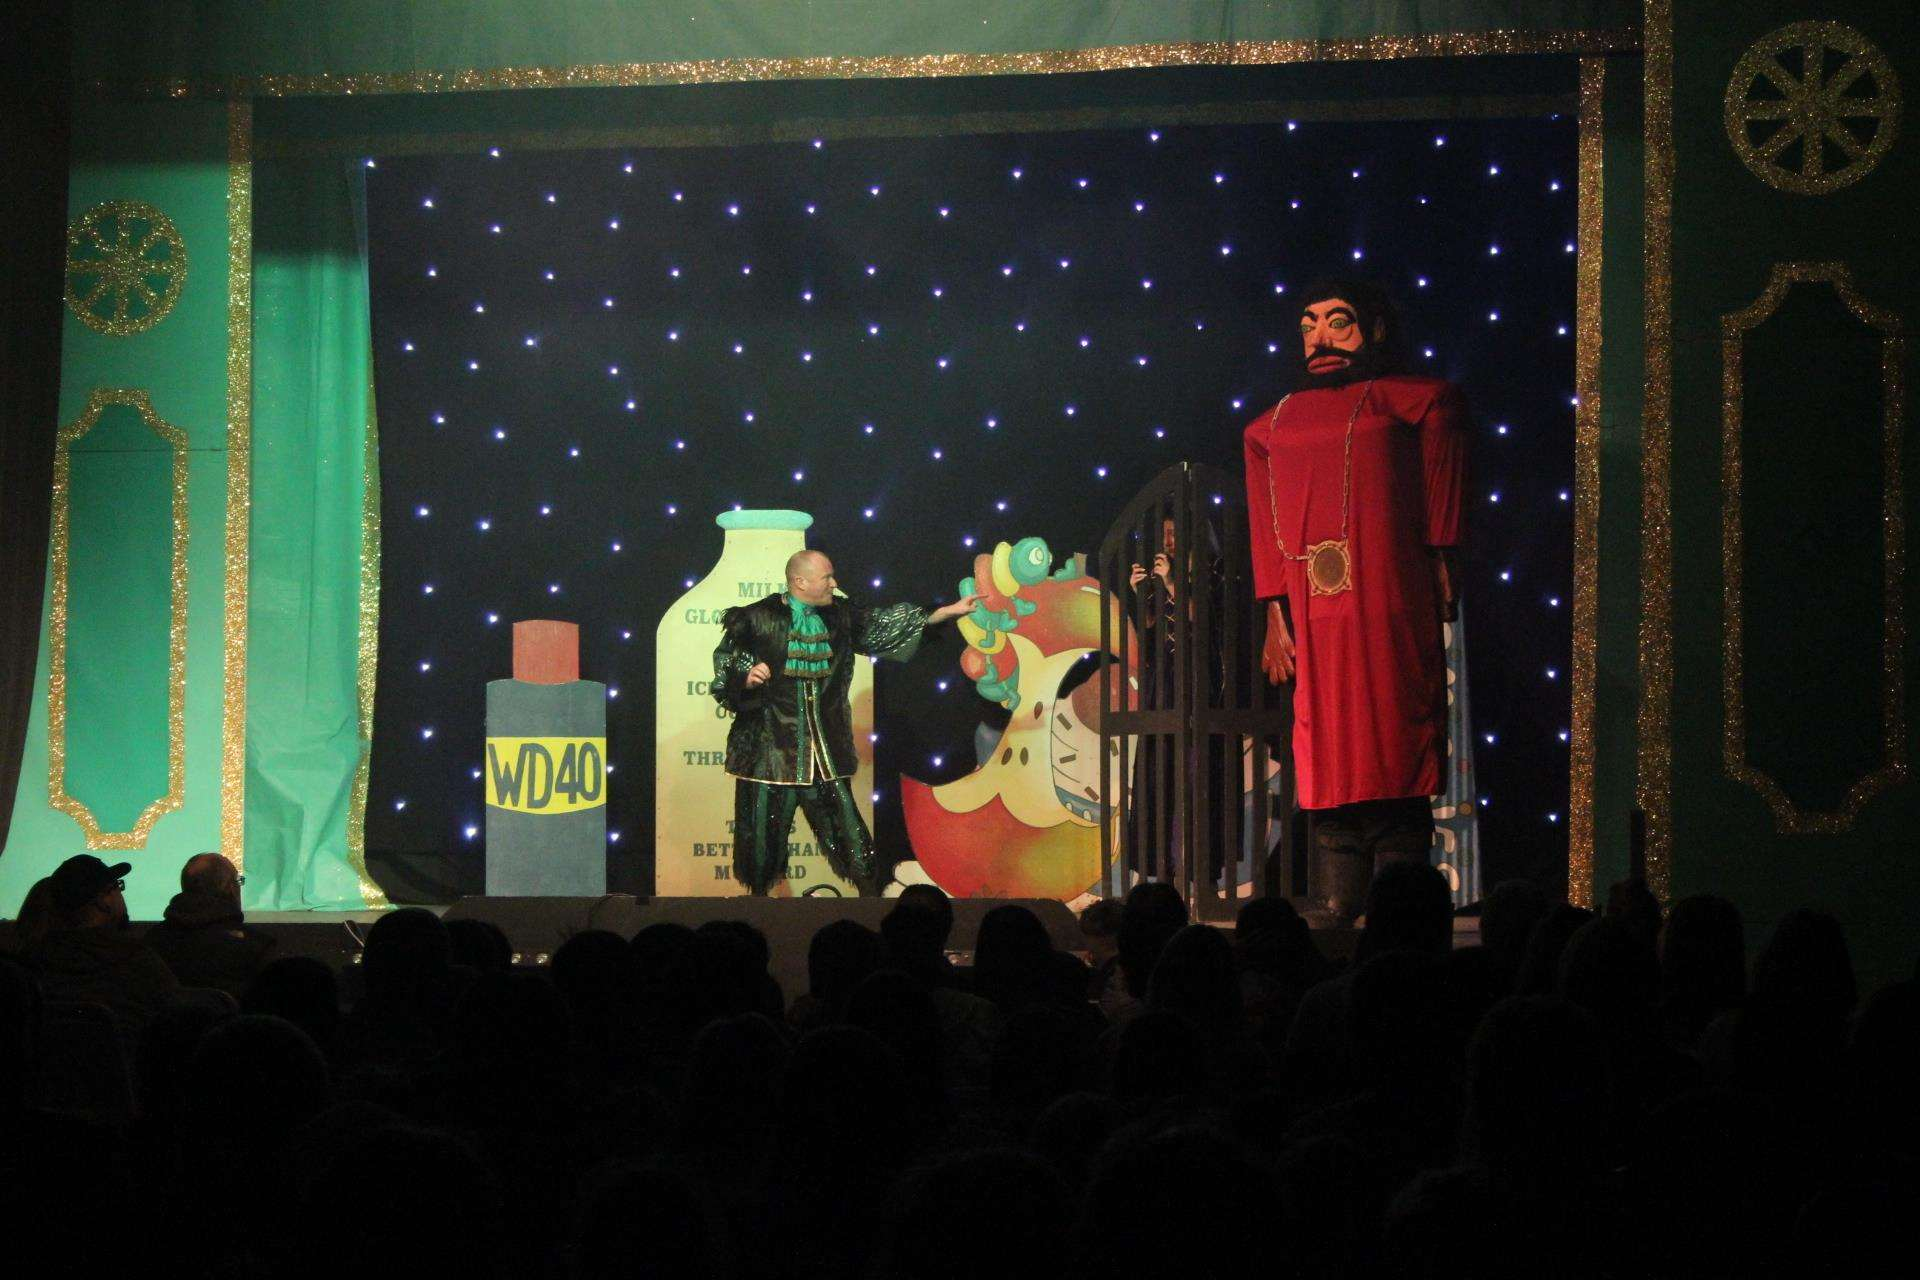 Fee-fi-fo-fum: It's Giant Bumbledore in Jack and the Beanstalk at Sittingbourne's Swallows Leisure Centre (6183869)